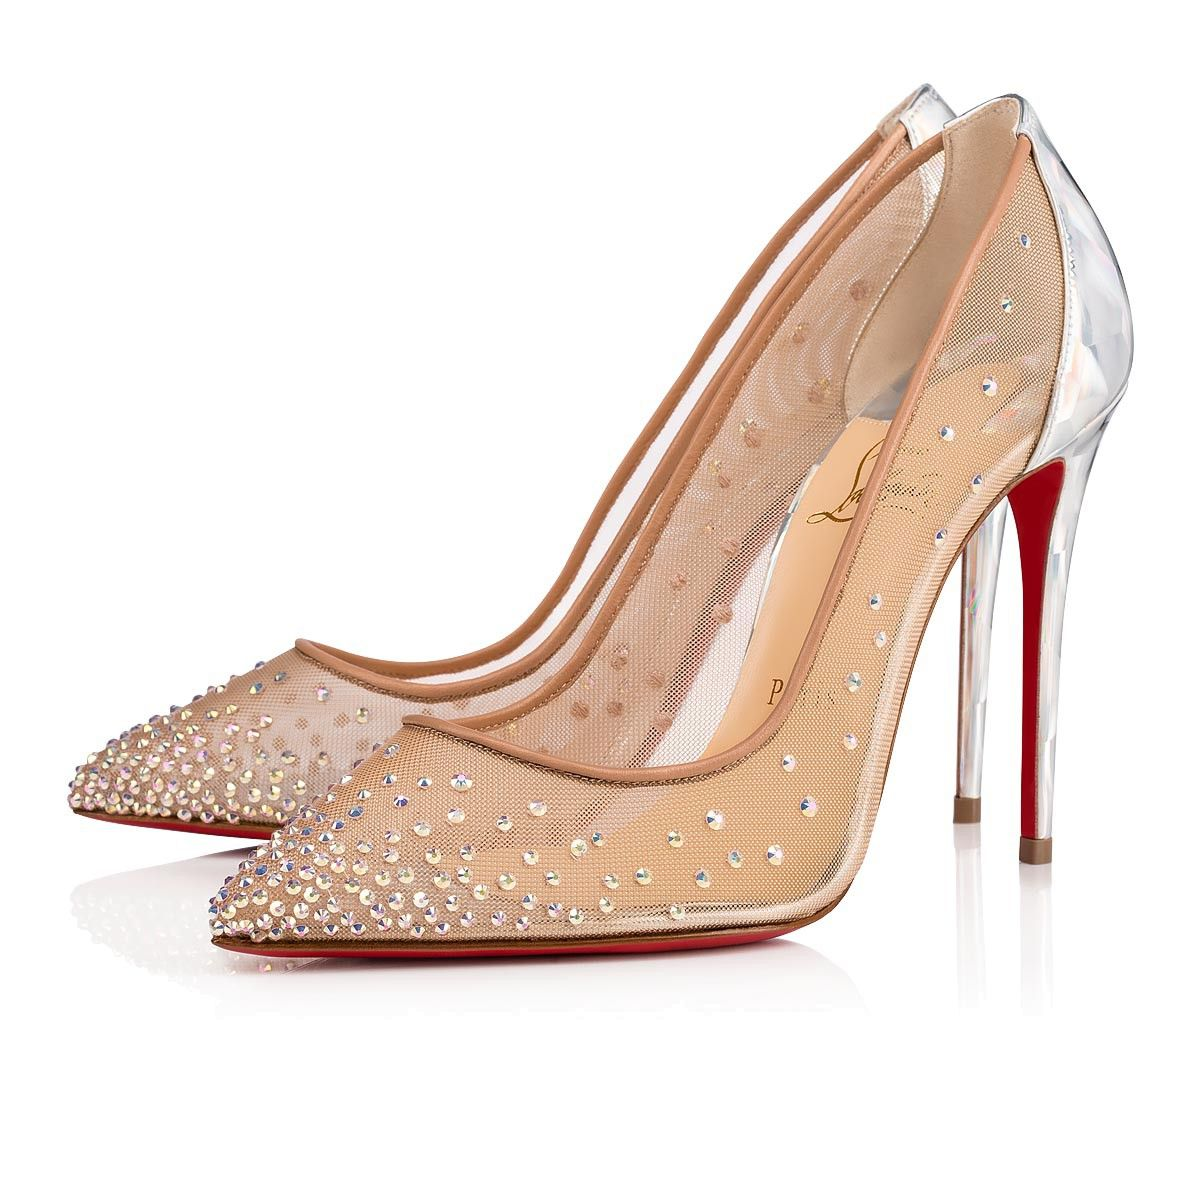 c870a7240d8 Follies Strass 100 Version silver Rete and Strass - Women Shoes ...